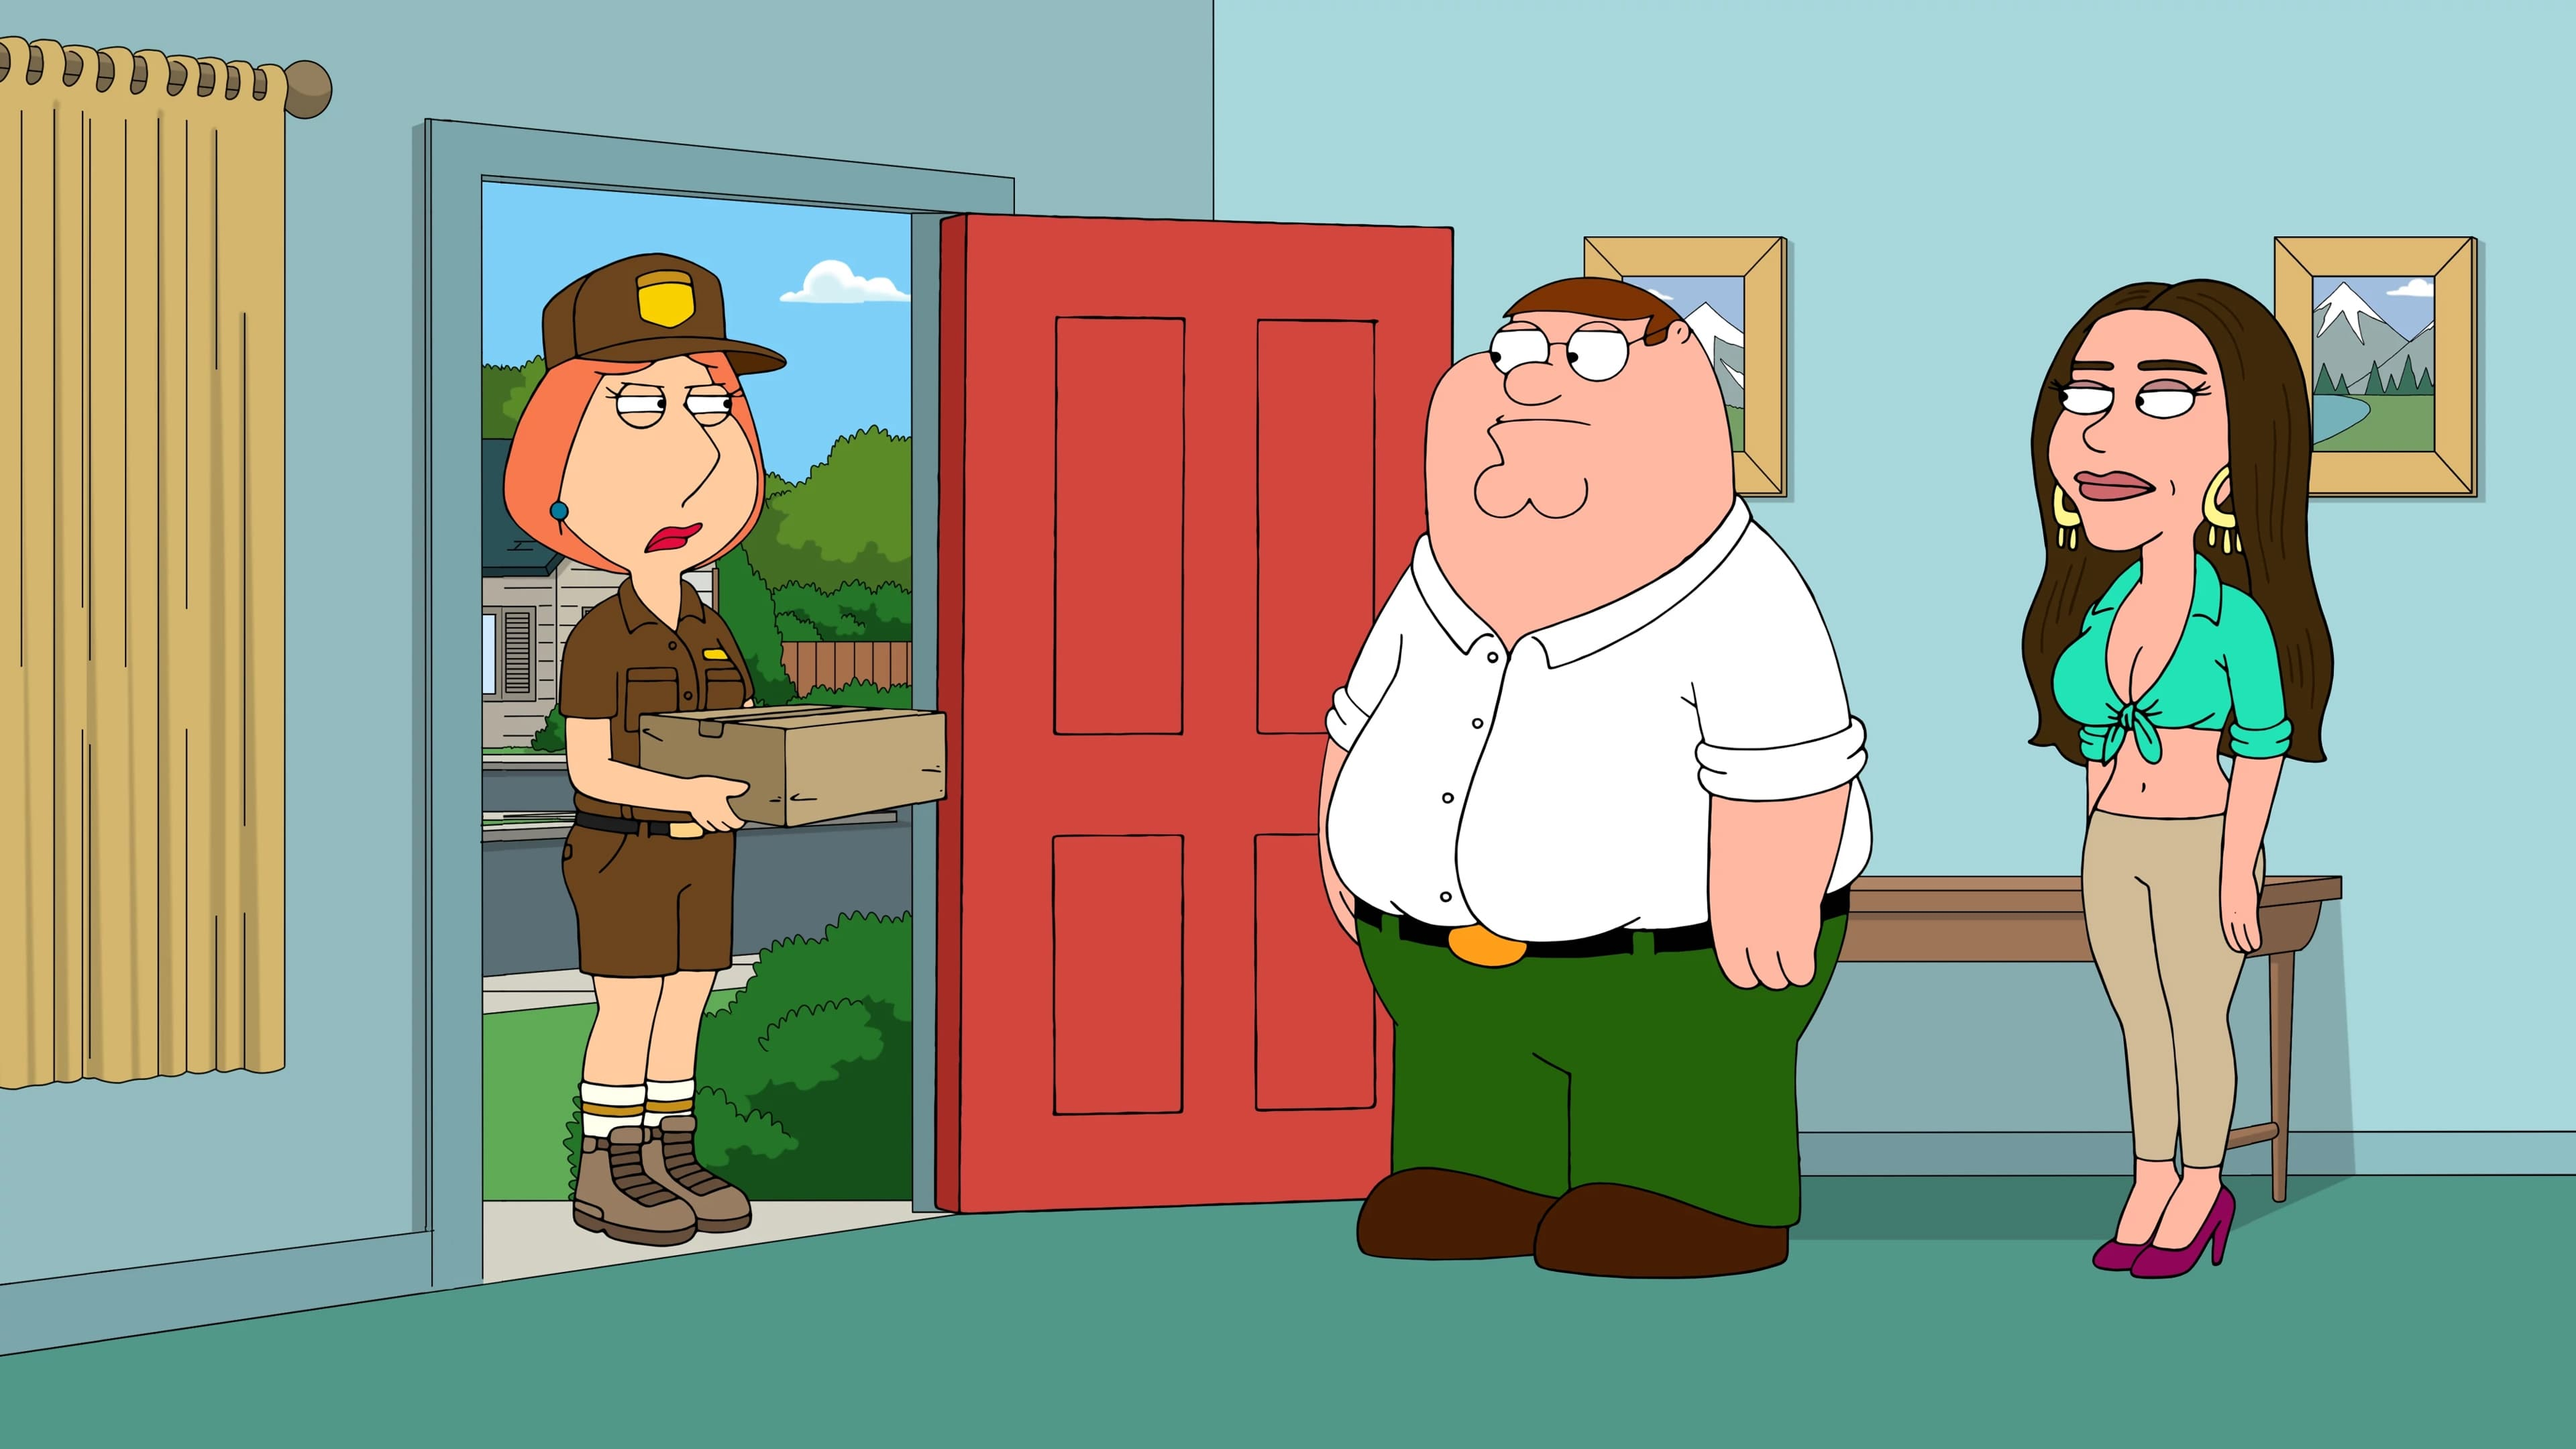 Family Guy - Season 16 Episode 1 : Emmy-Winning Episode